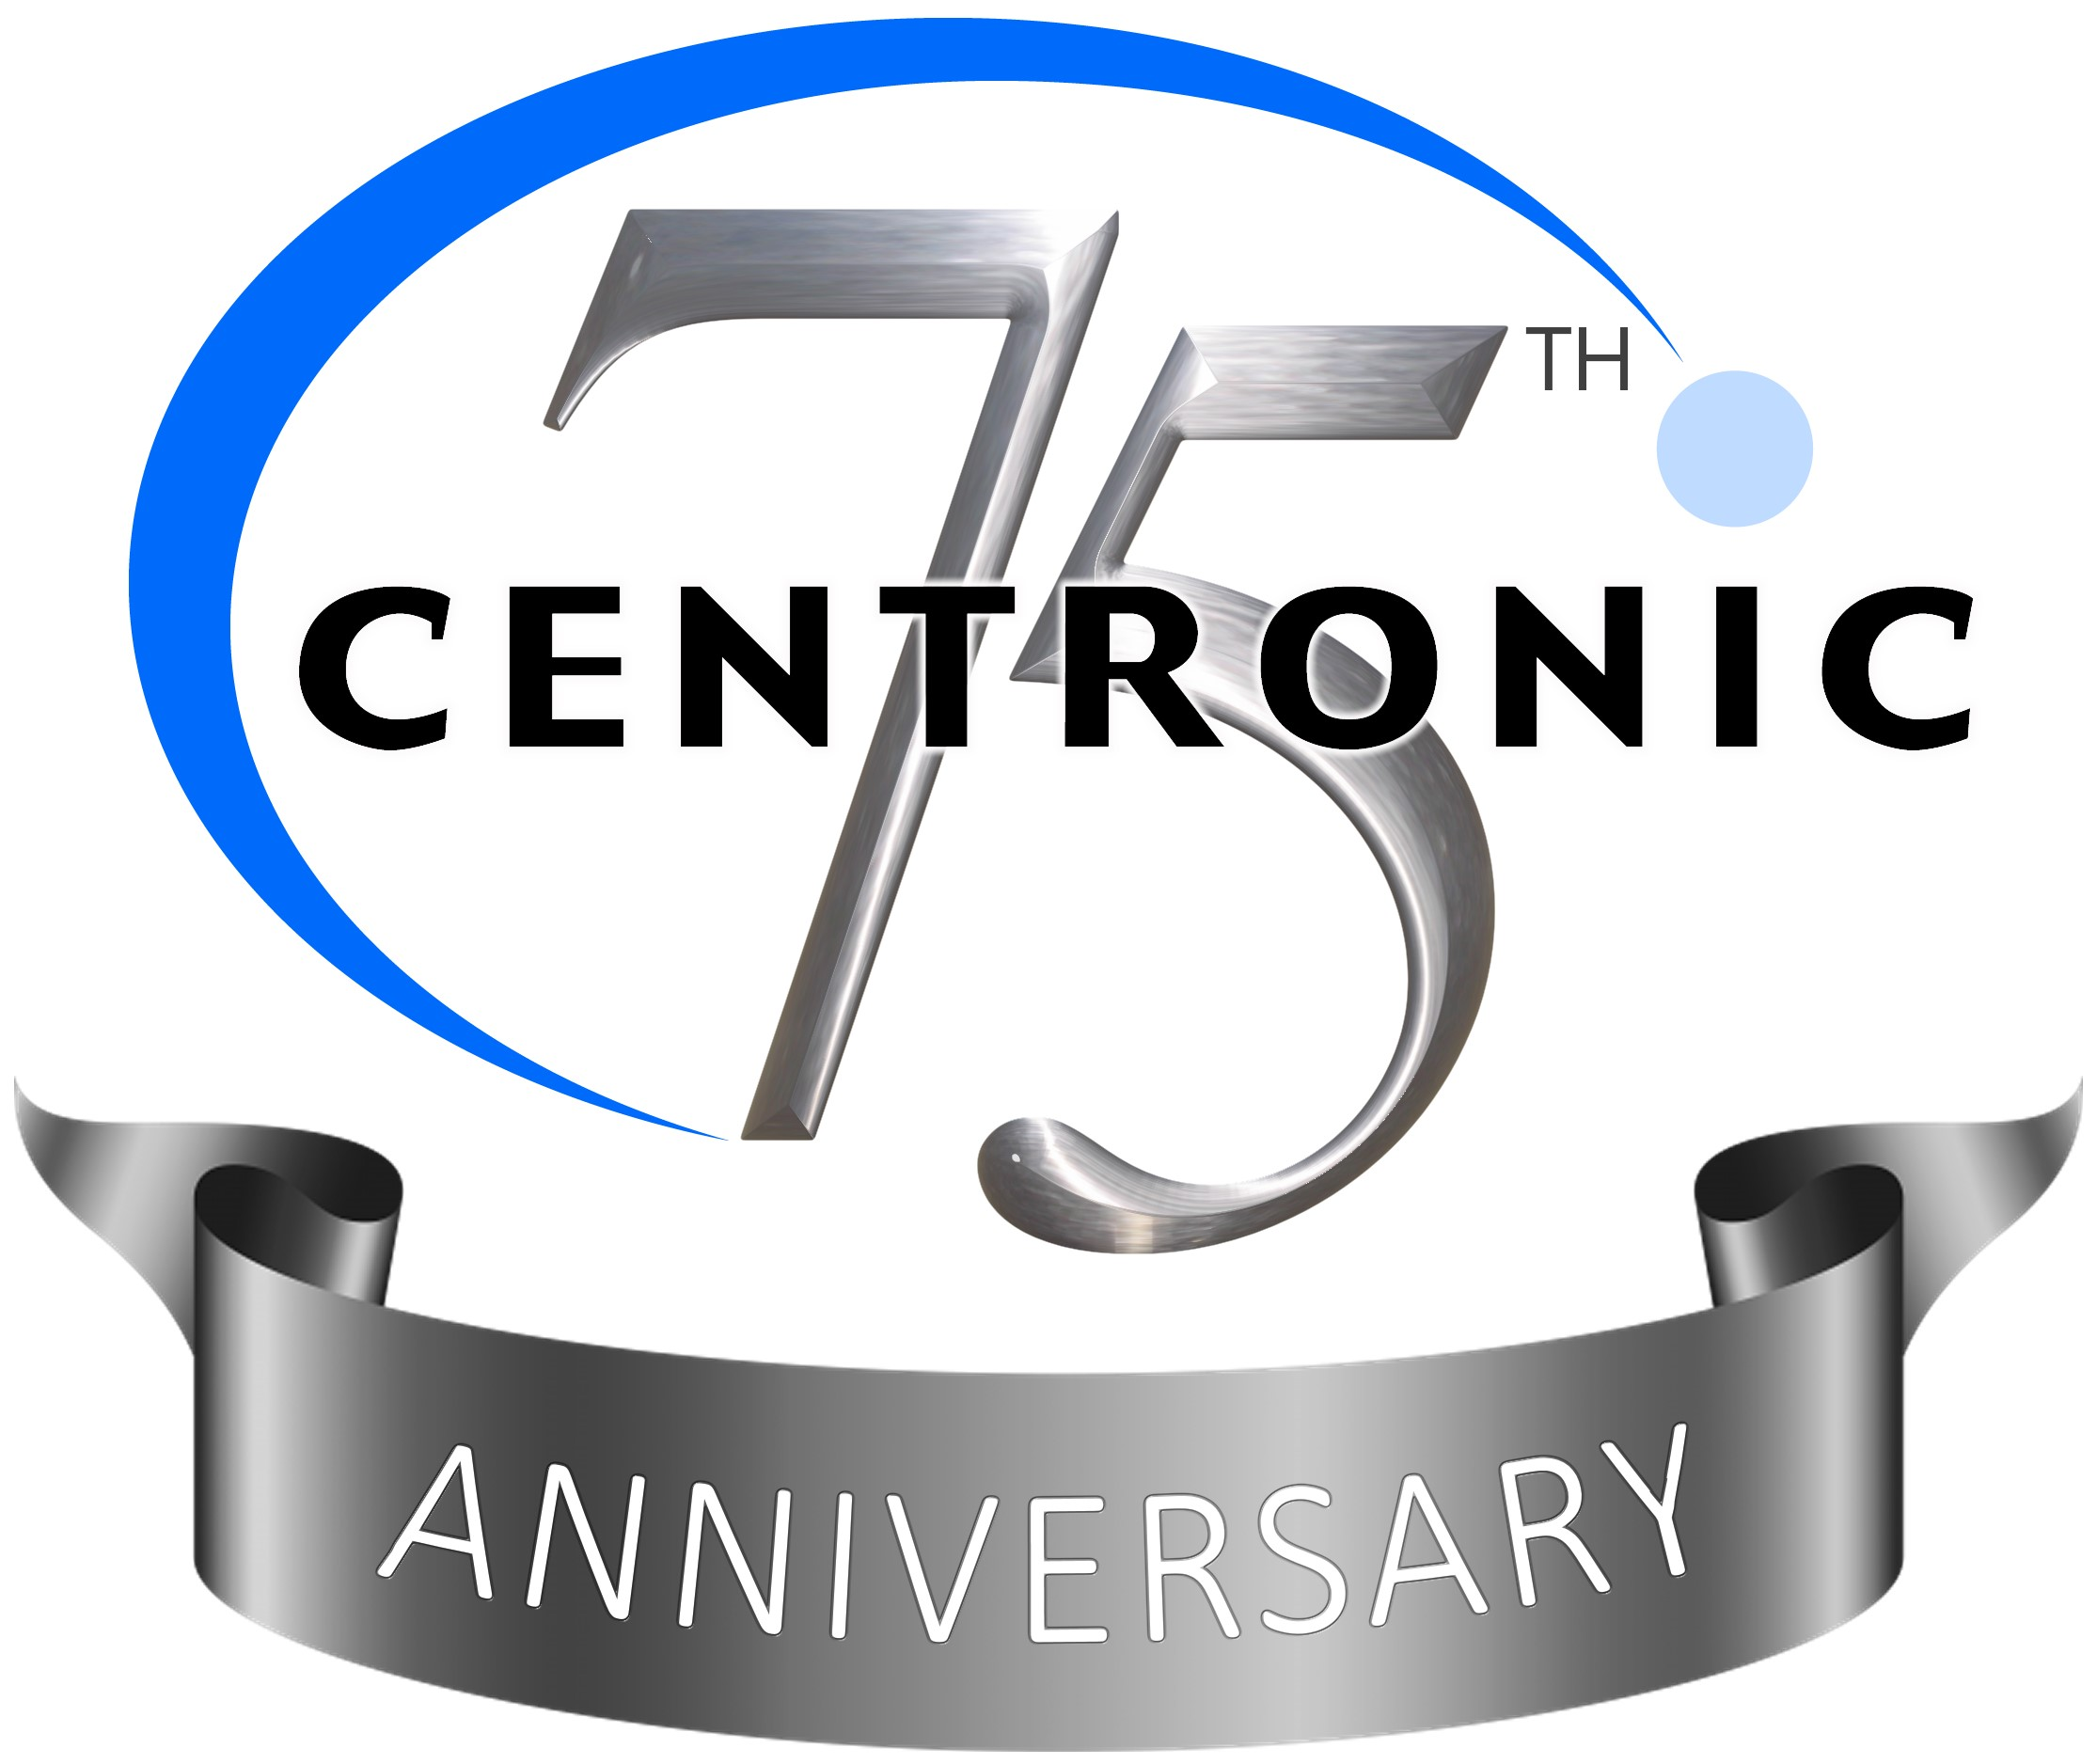 Our 75th anniversary year - investing for the future